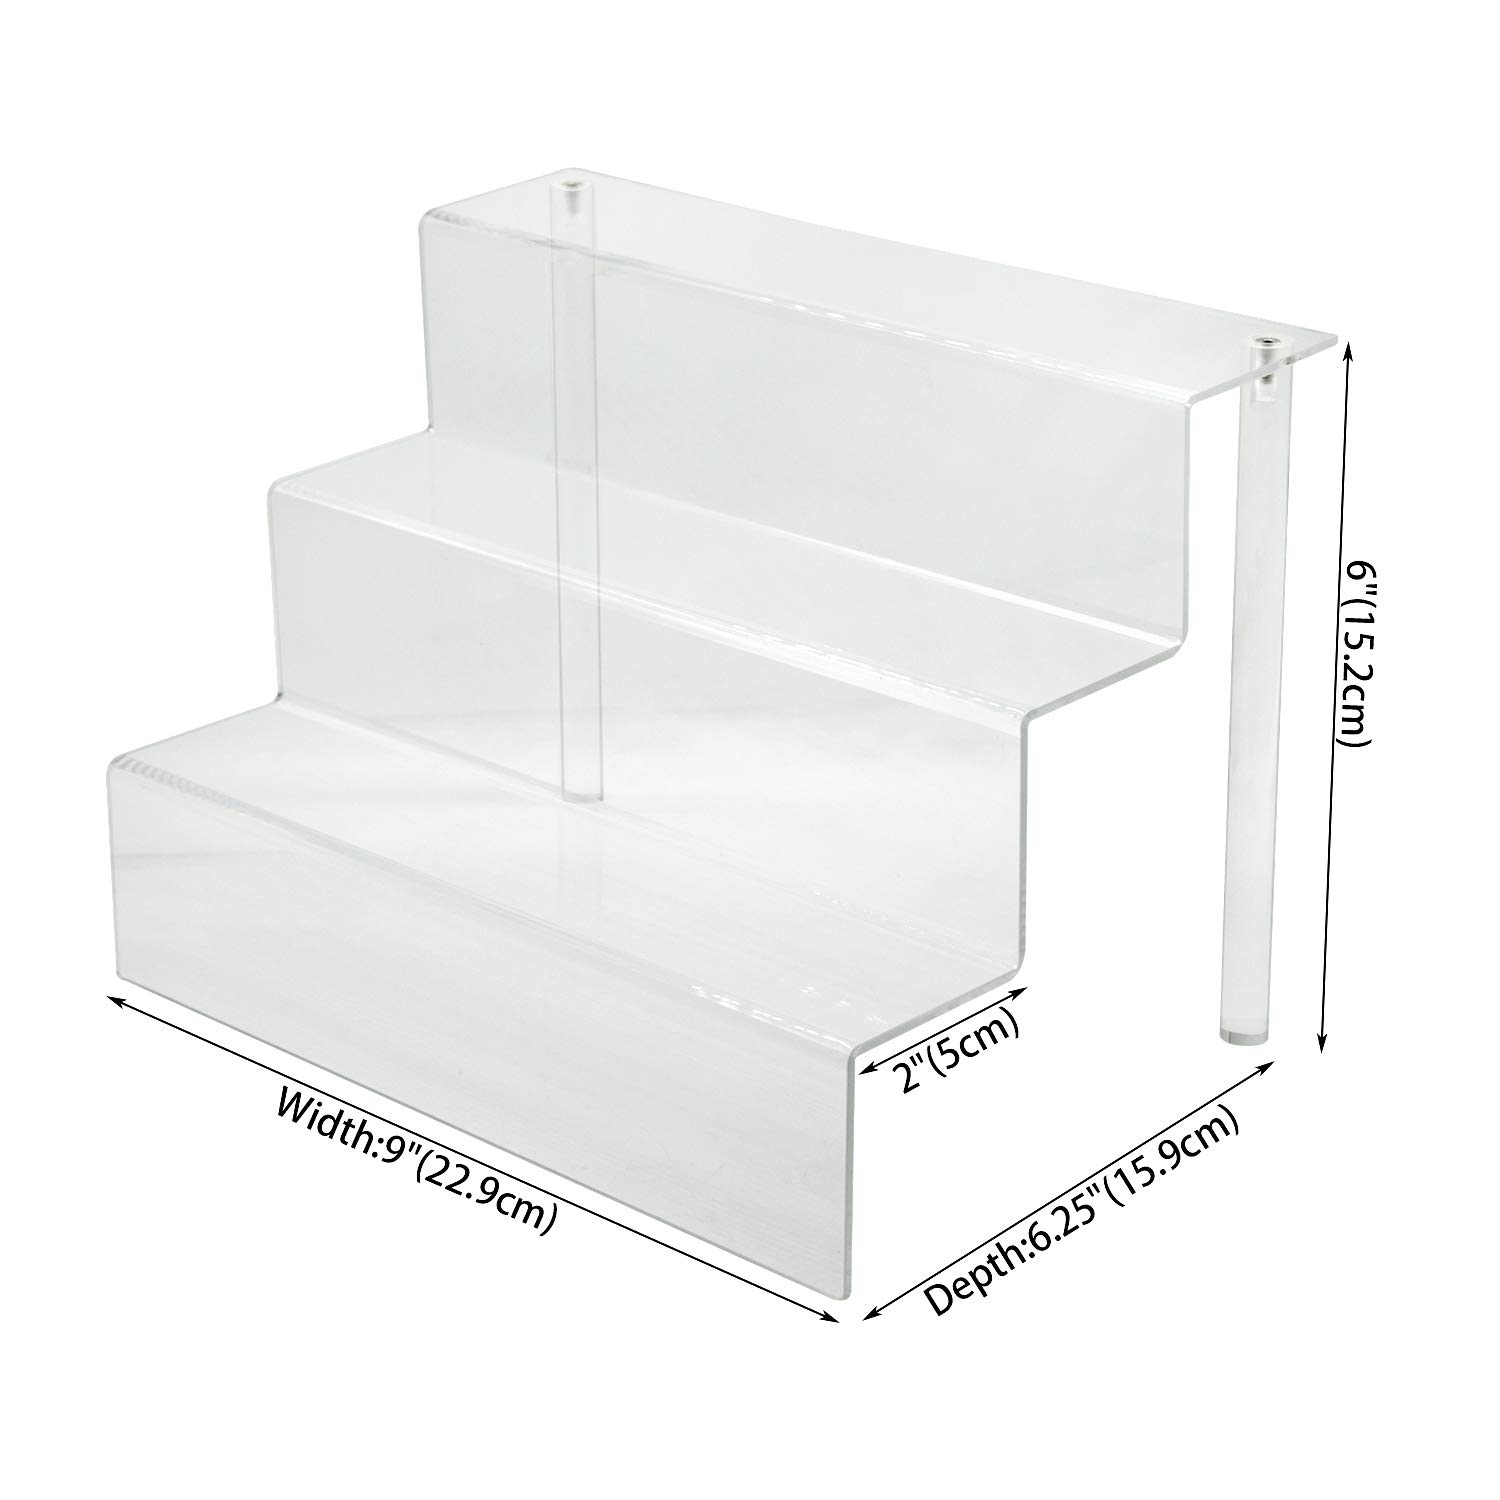 Combination of Life 9-Inch W by 6.25-Inch D 3 Tier Acrylic Display Shelf for Funko Pops Figures Amiibo Nendoroid in Cabinet